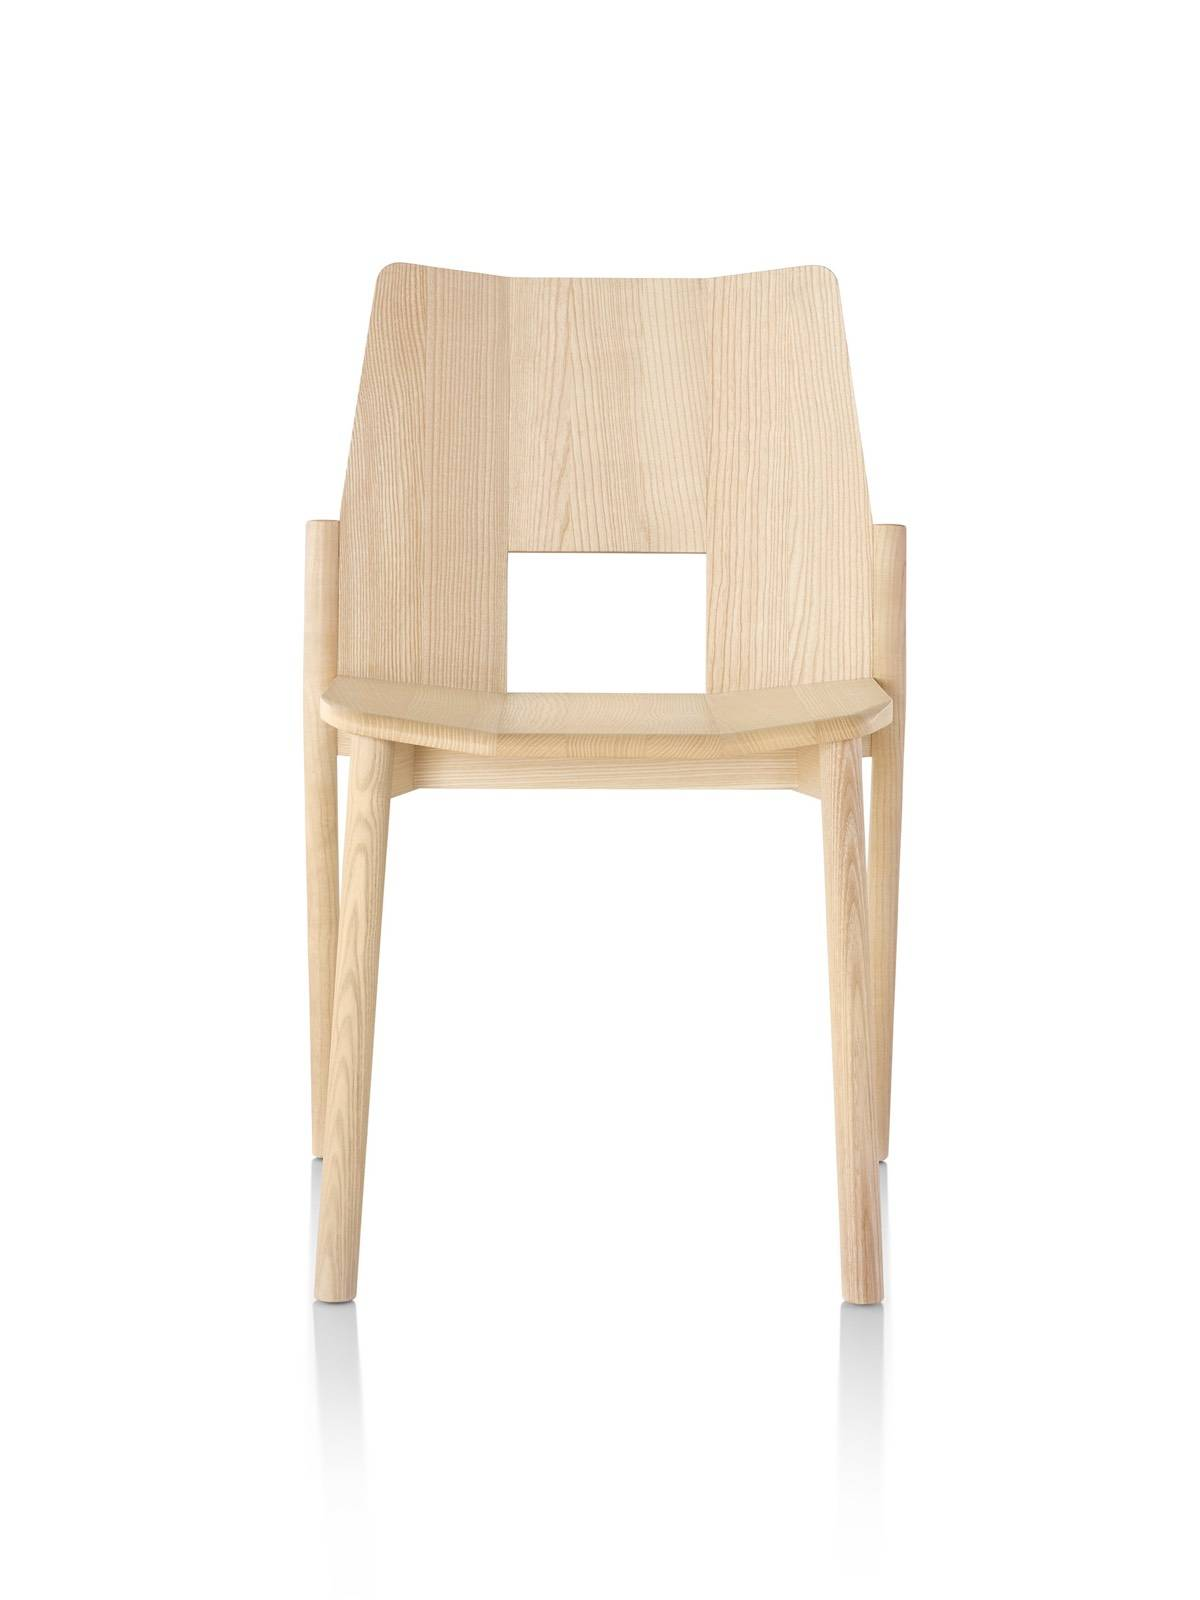 Wood Mattiazzi Tronco stackable side chair, viewed from the front.